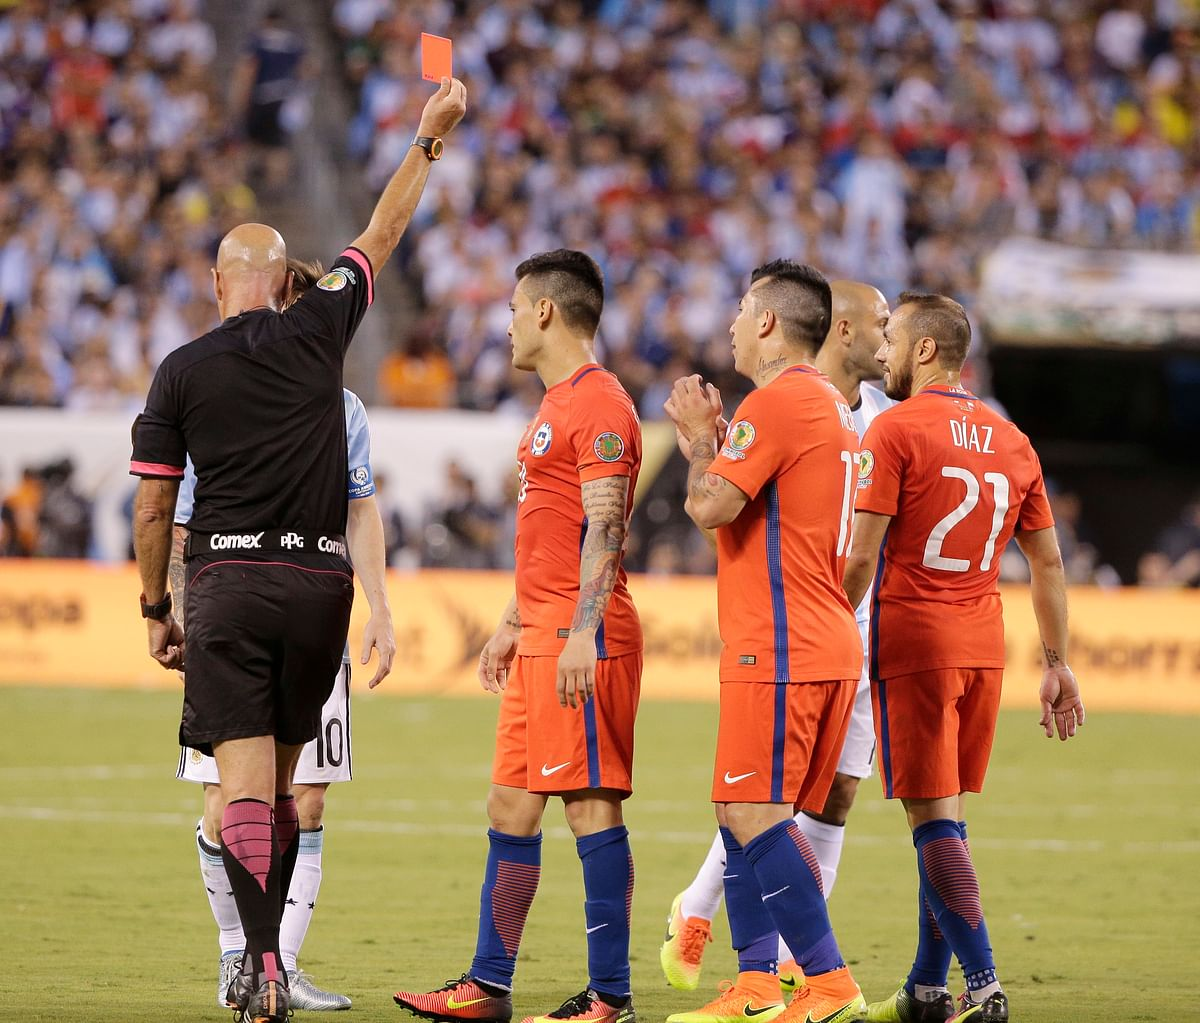 Referee Heber Lopes sends Chile's Marcelo Diaz (21) off after his foul on Argentina's Lionel Messi. (Photo: AP)